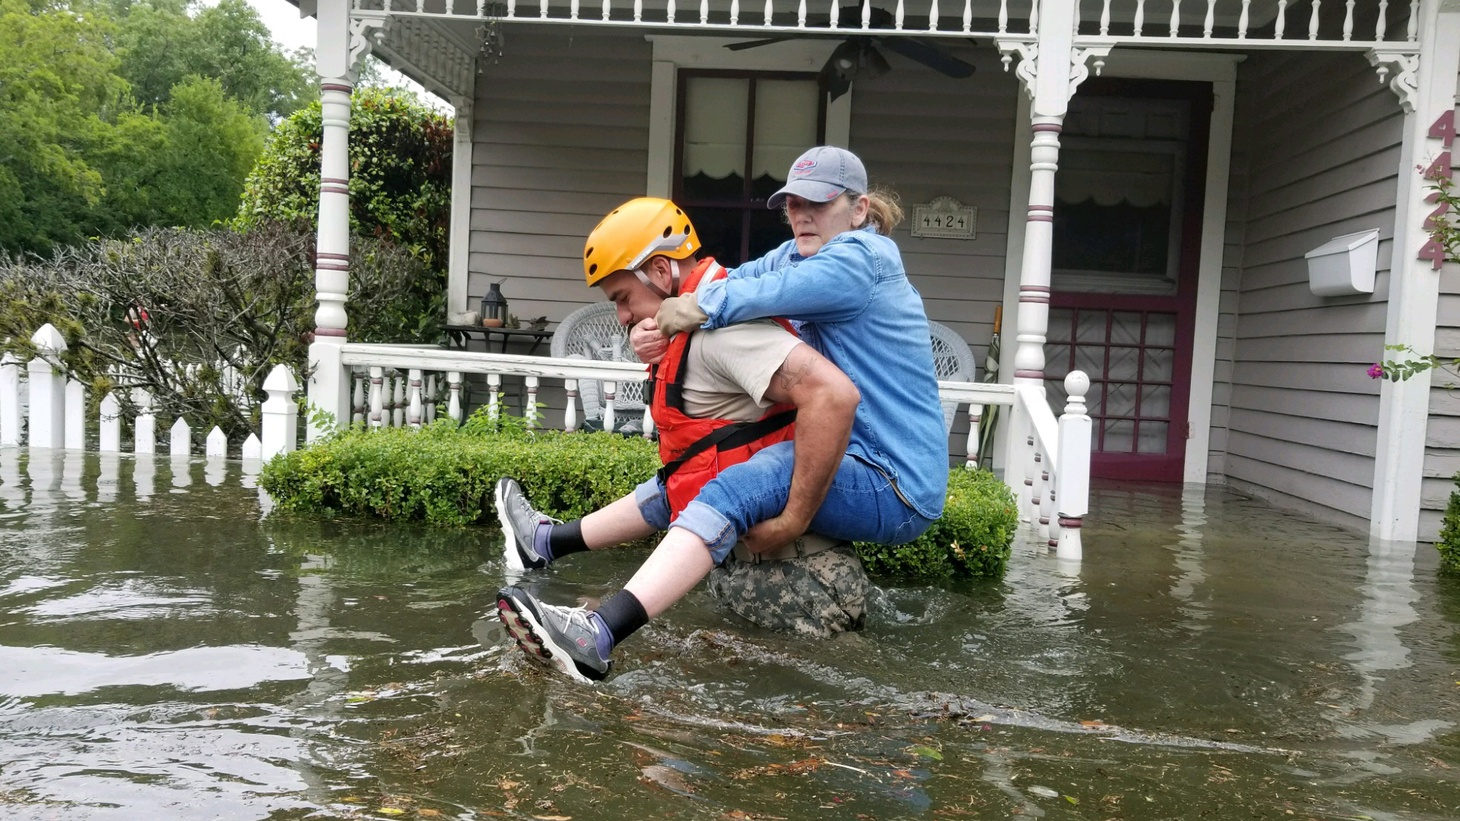 Tens of thousands in Houston are living through a disaster all too much like New Orleans went through when it was struck by Katrina just 12 years ago. We talk about the struggle for recovery from one disaster while making plans for the next one.